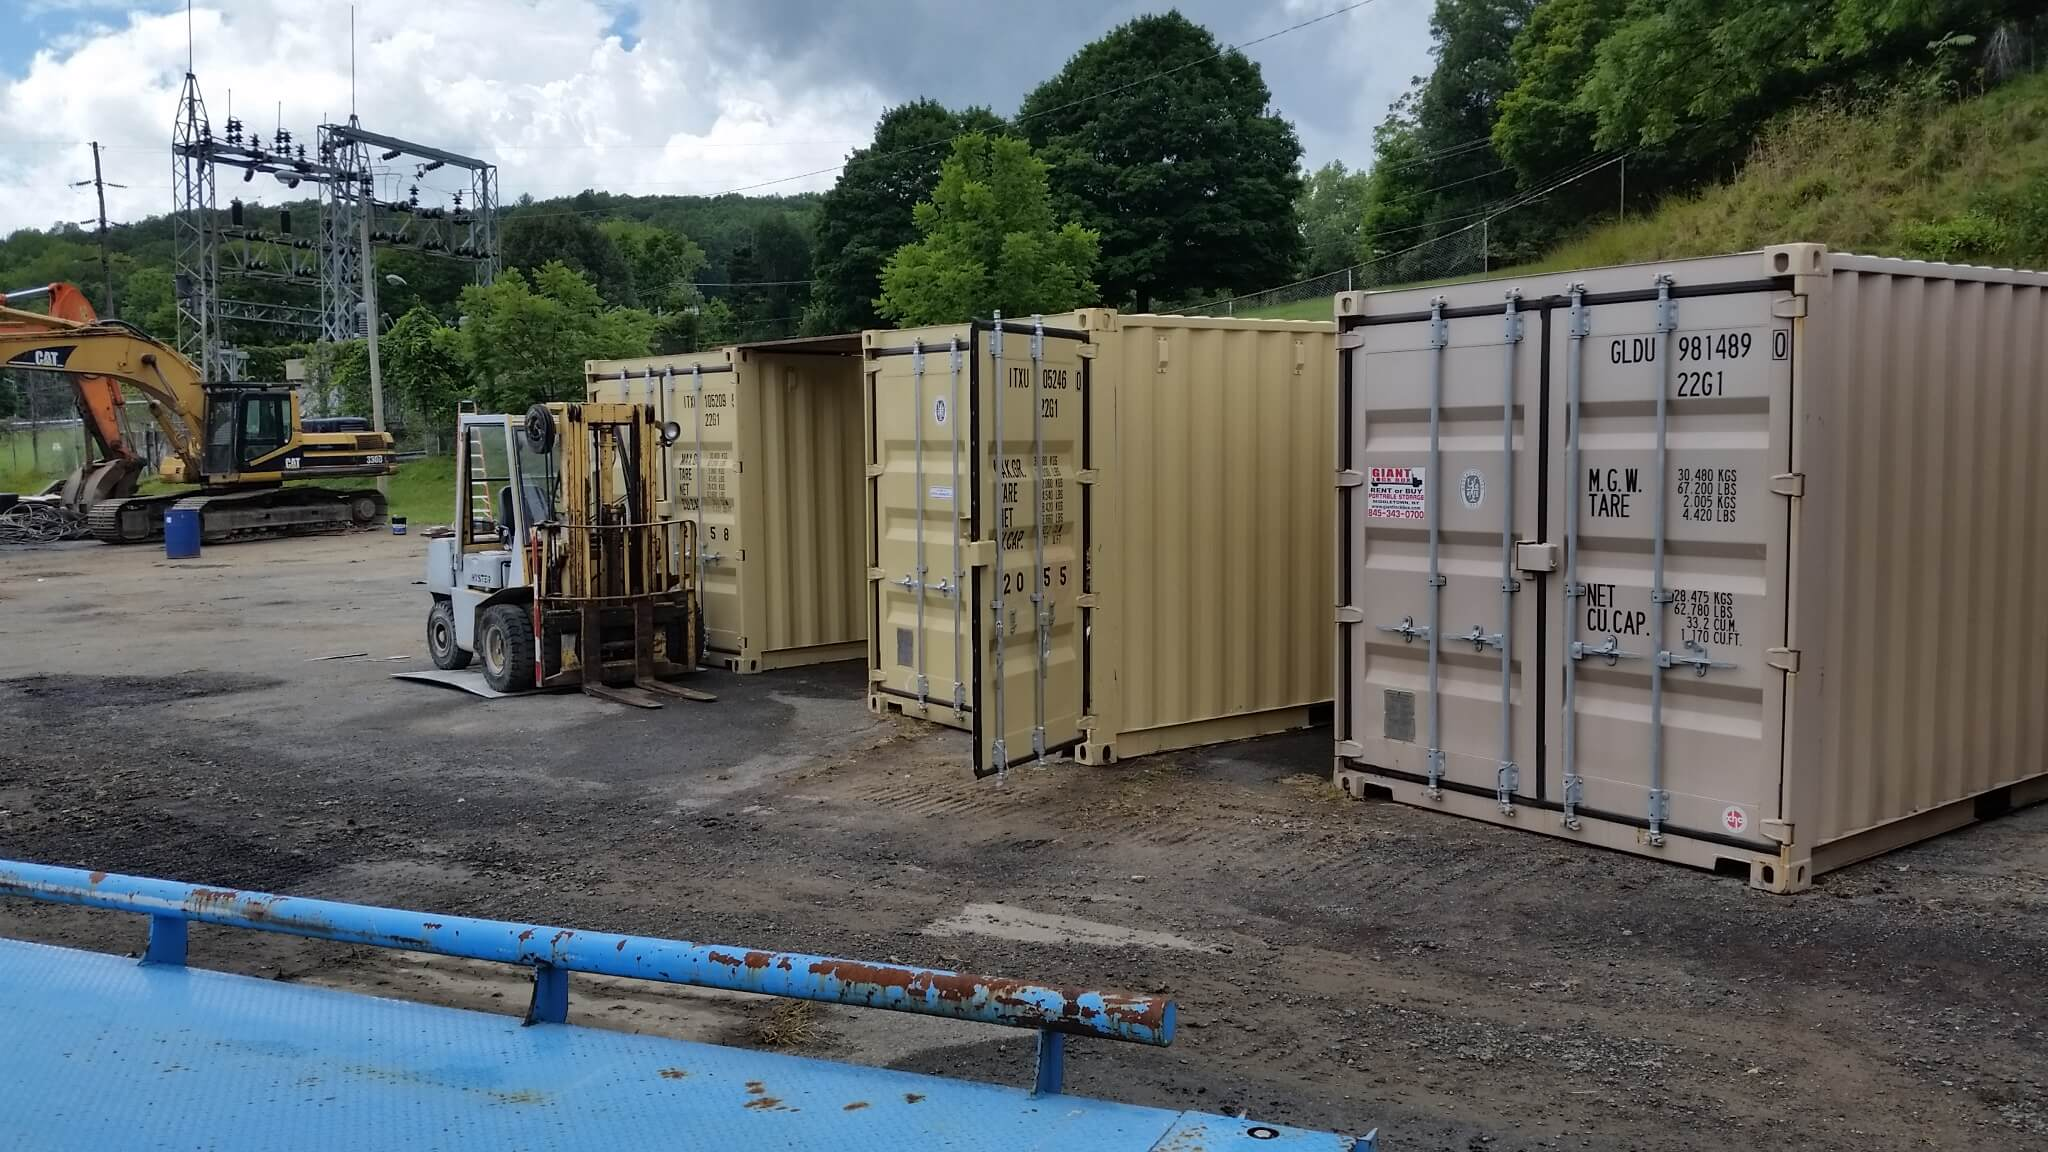 20' Conex Containers on a construction site